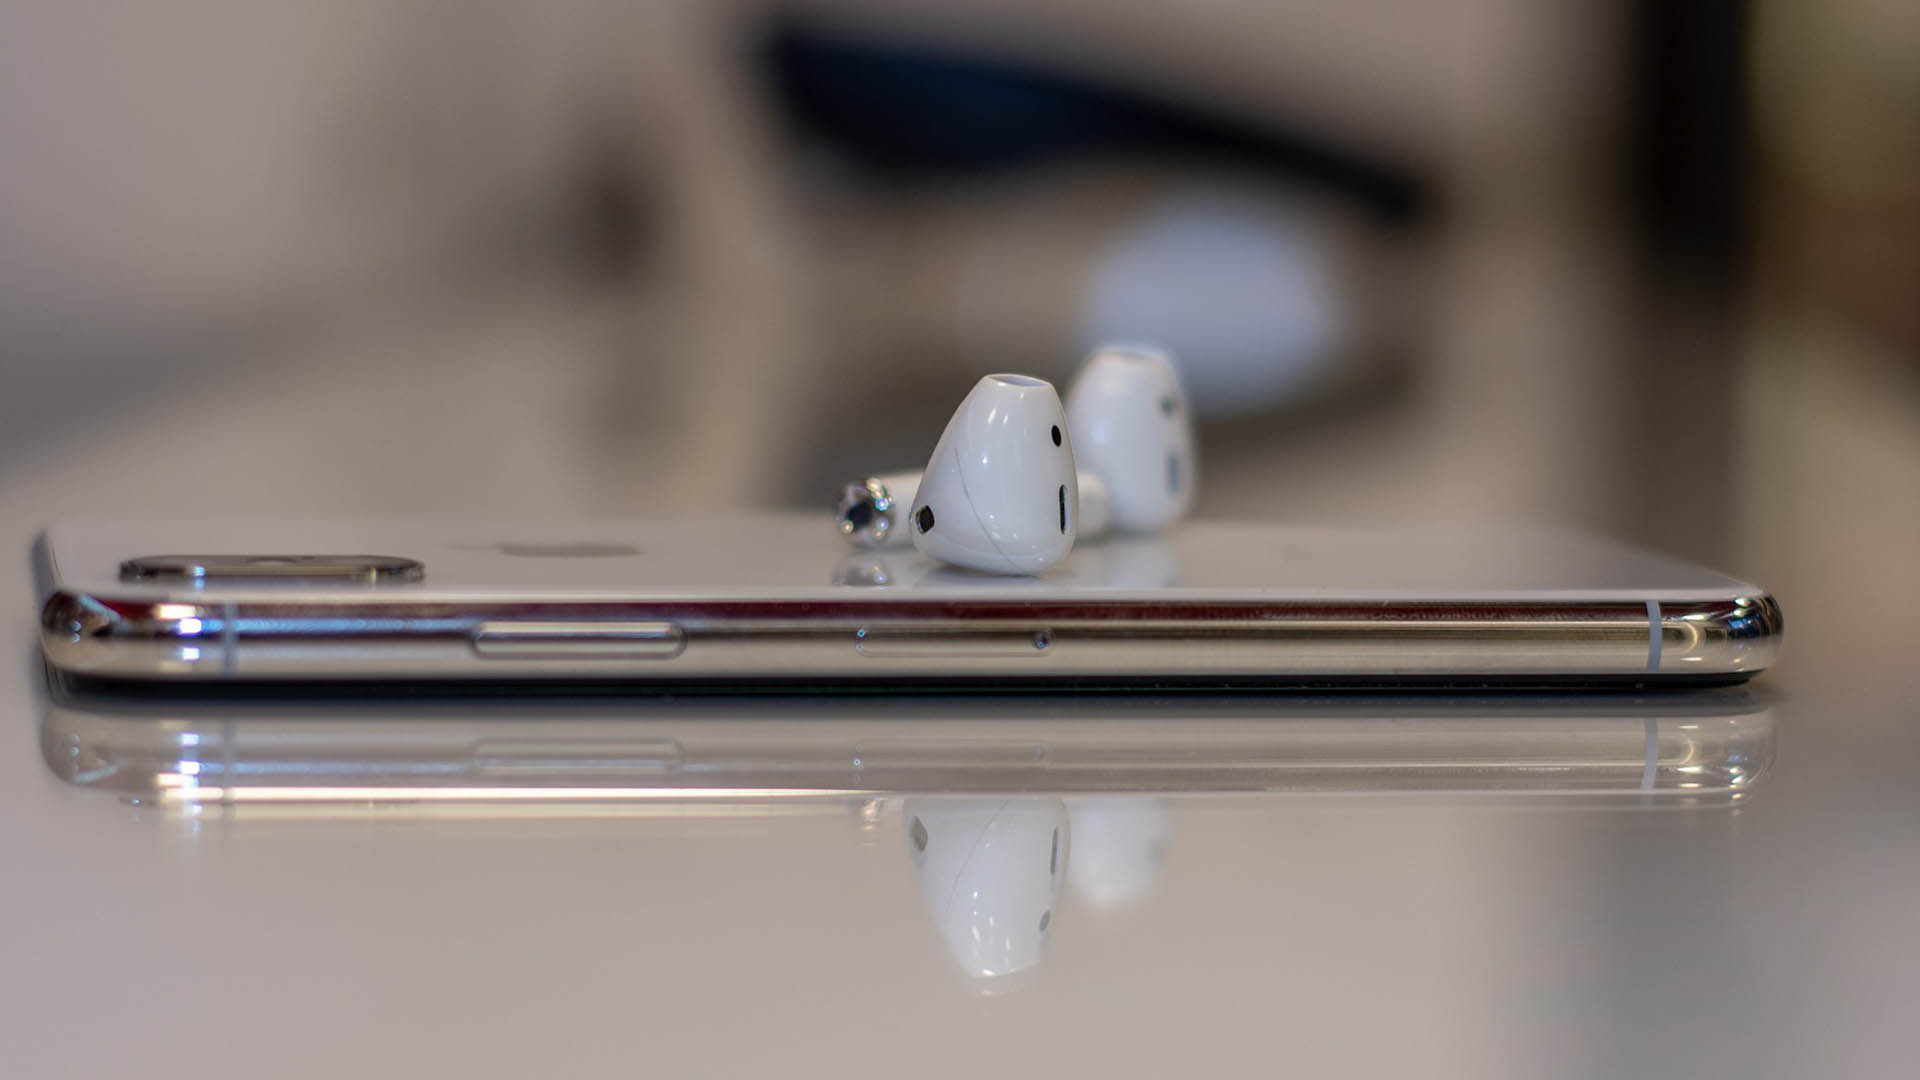 New AirPods Have Incredible Performance